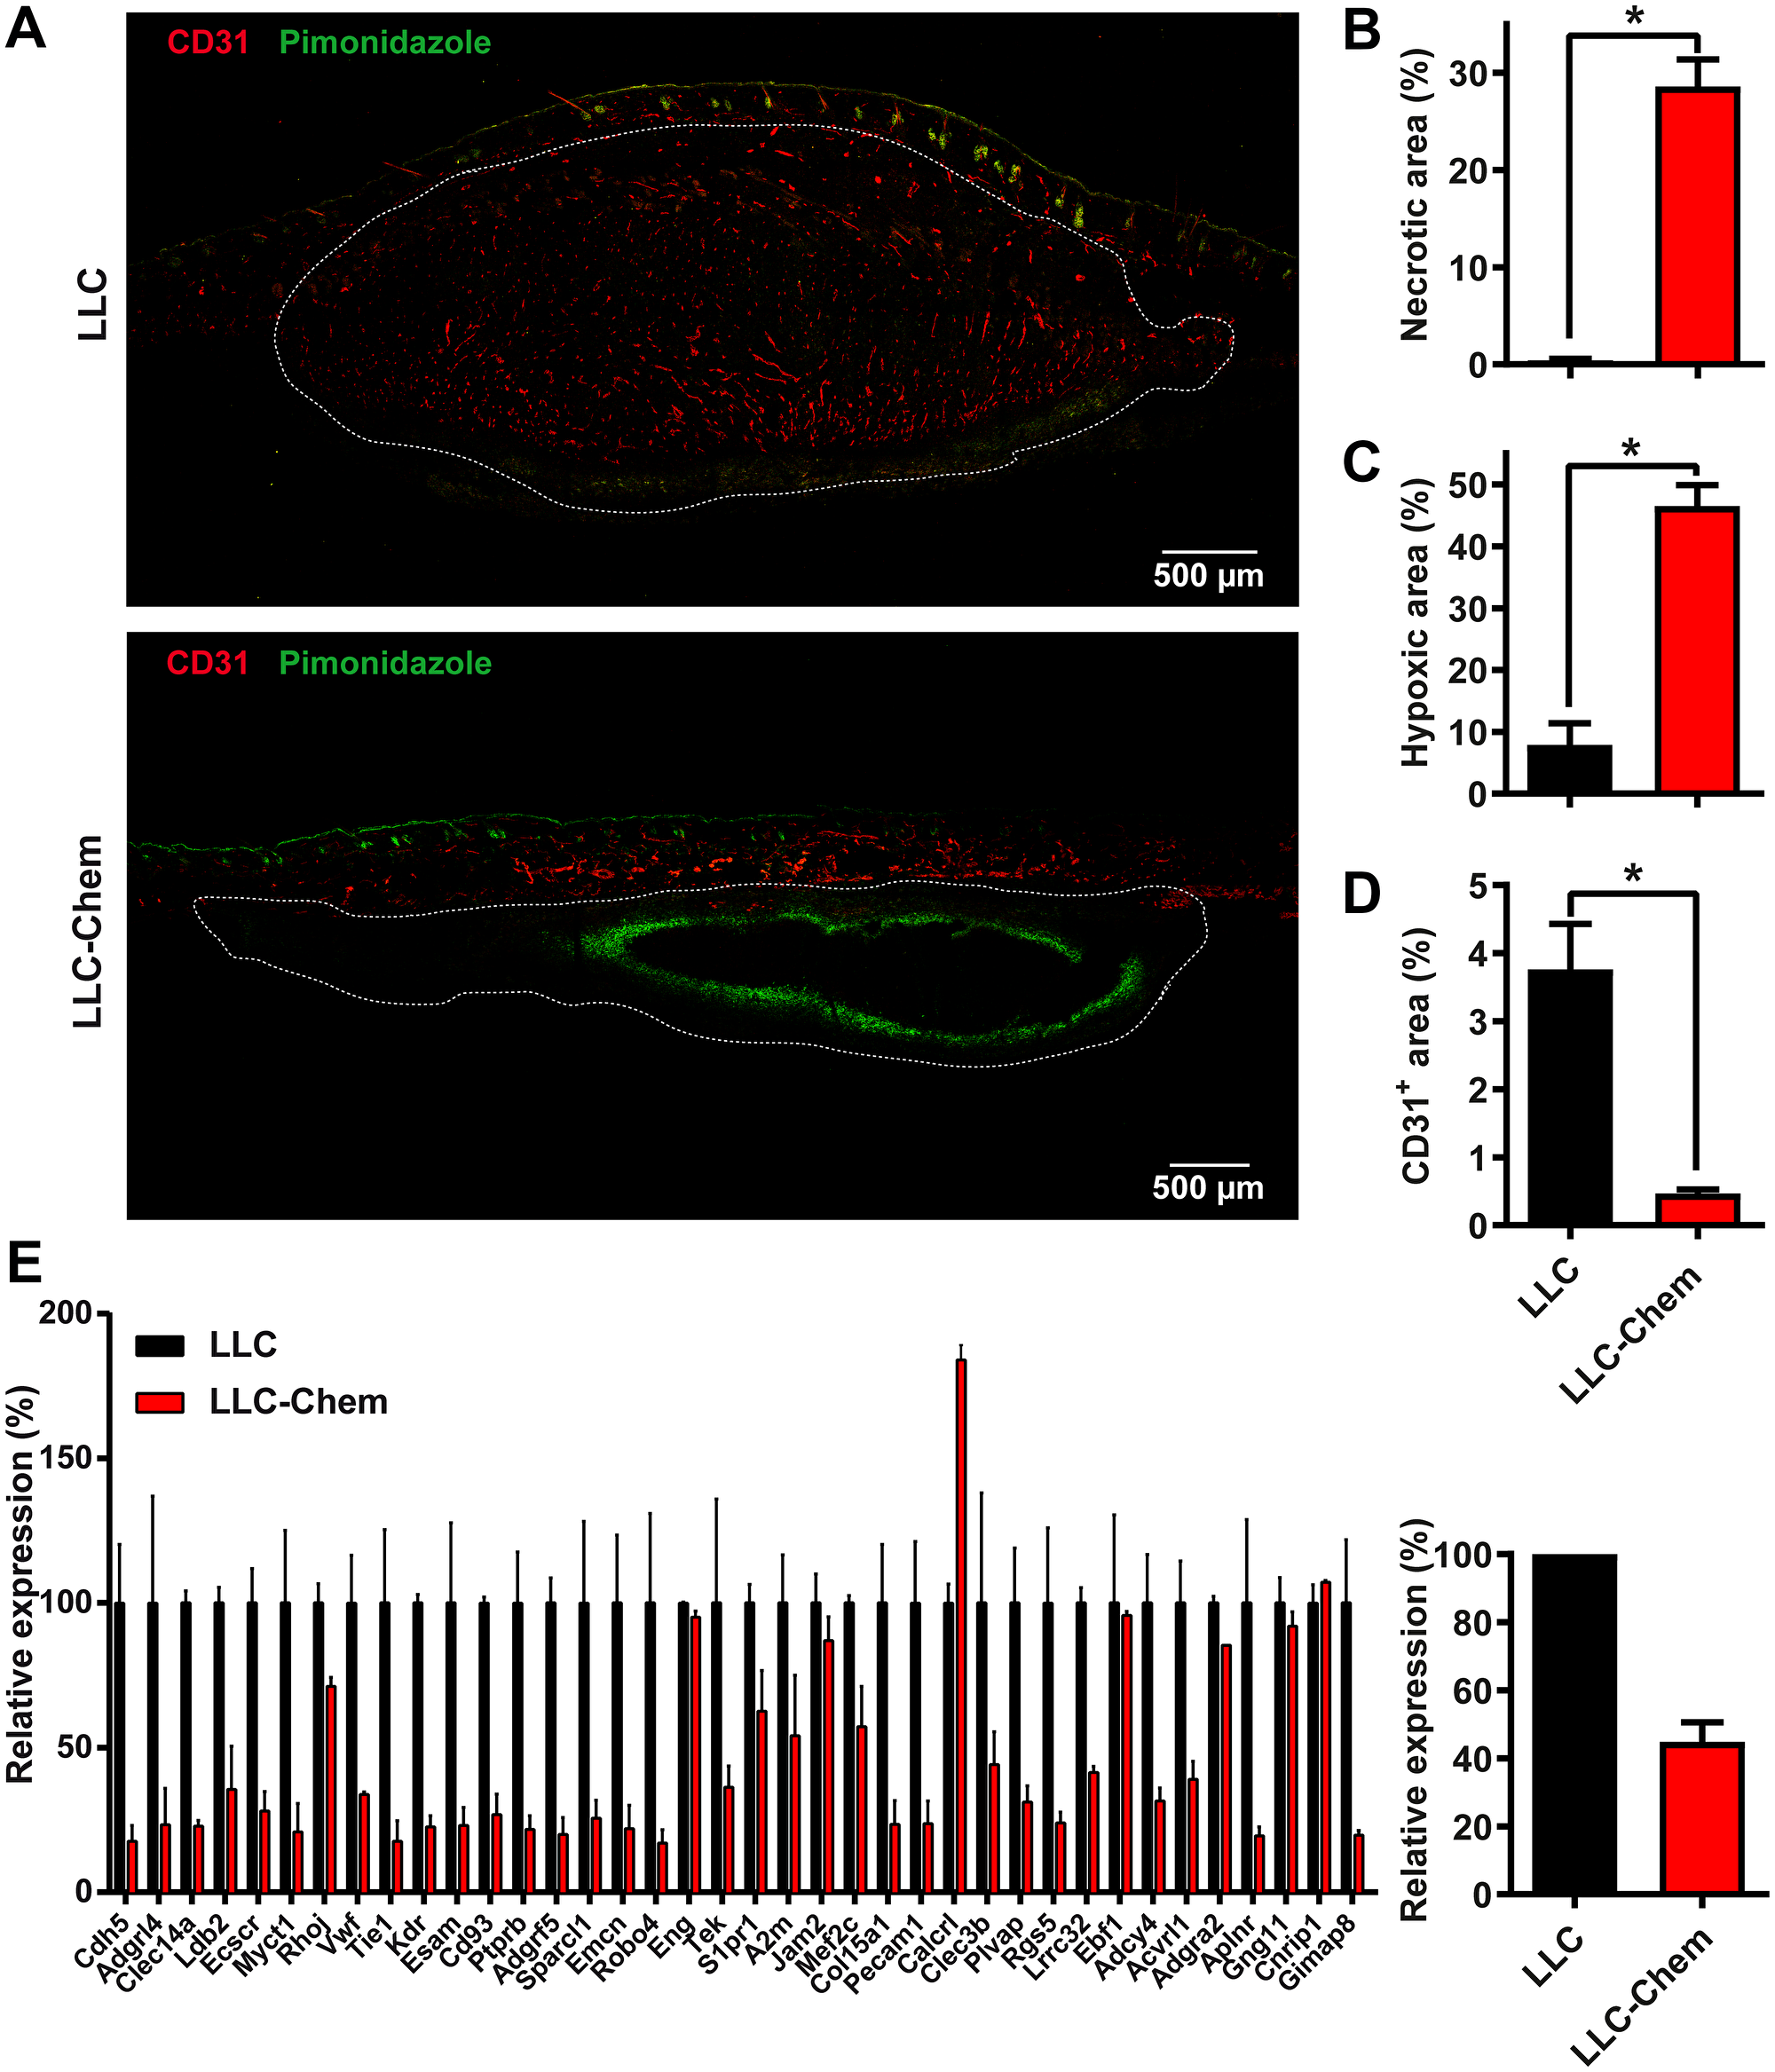 Chemerin expression promotes hypoxia and necrosis in tumors by decreasing angiogenesis.